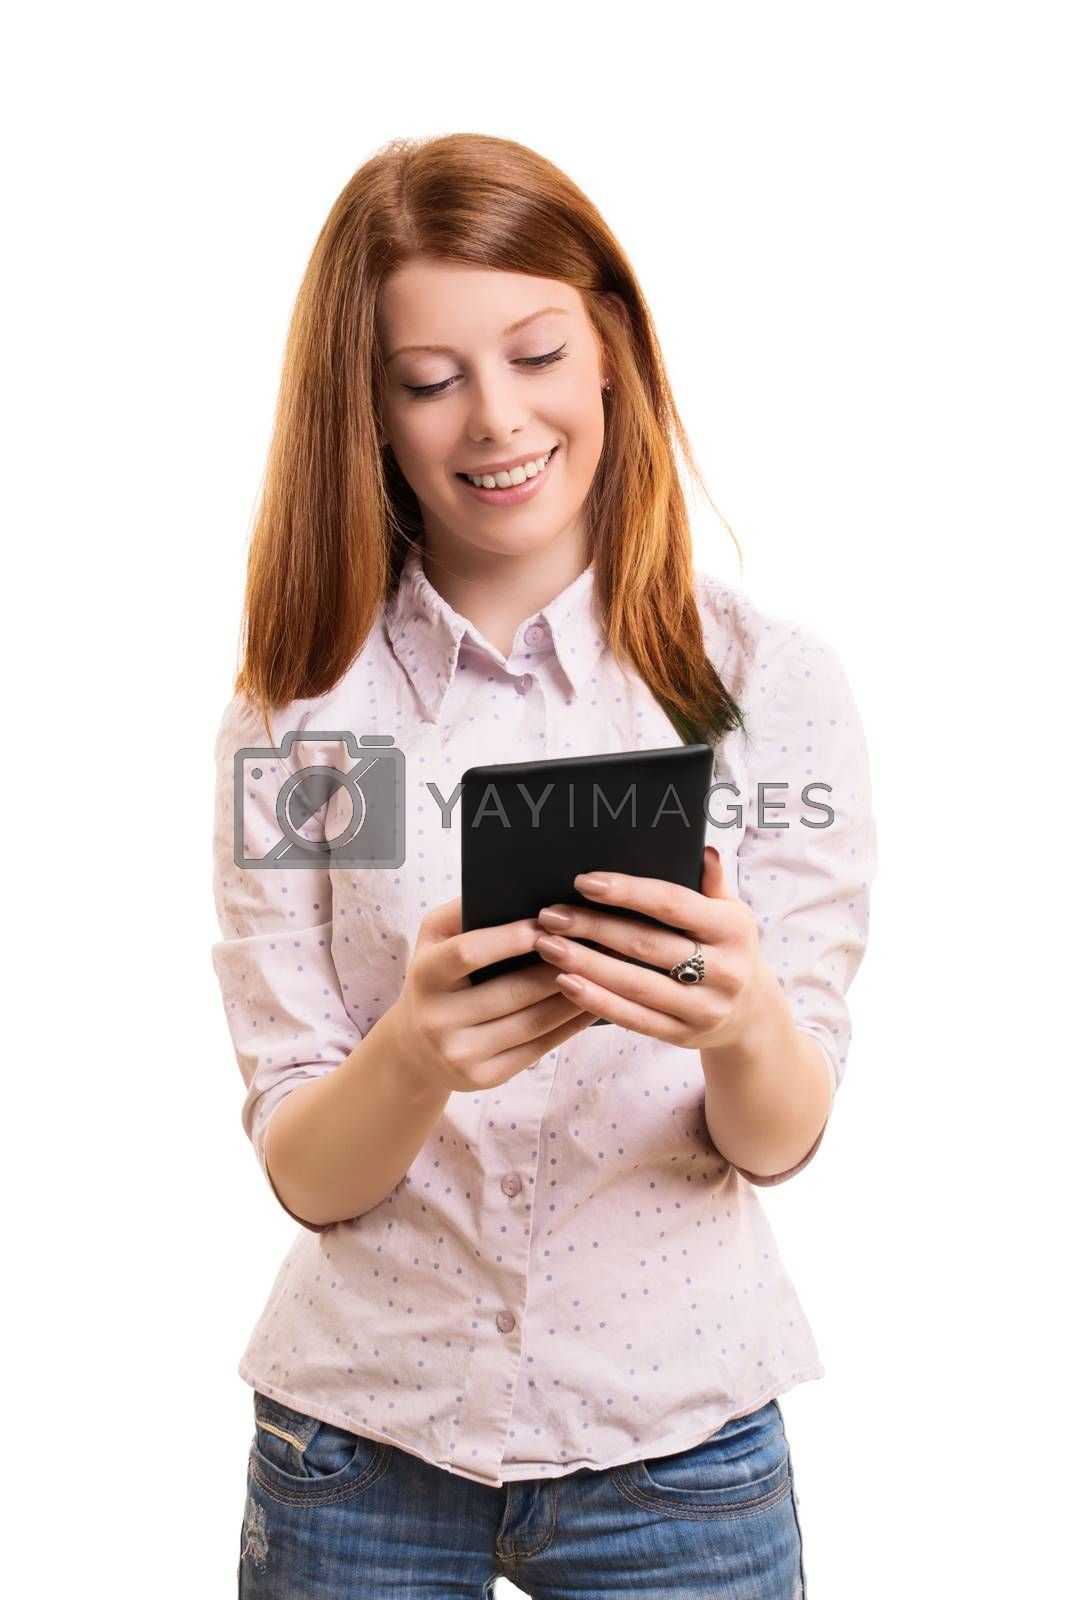 A portrait of a smiling female student holding a tablet, isolated on white background.